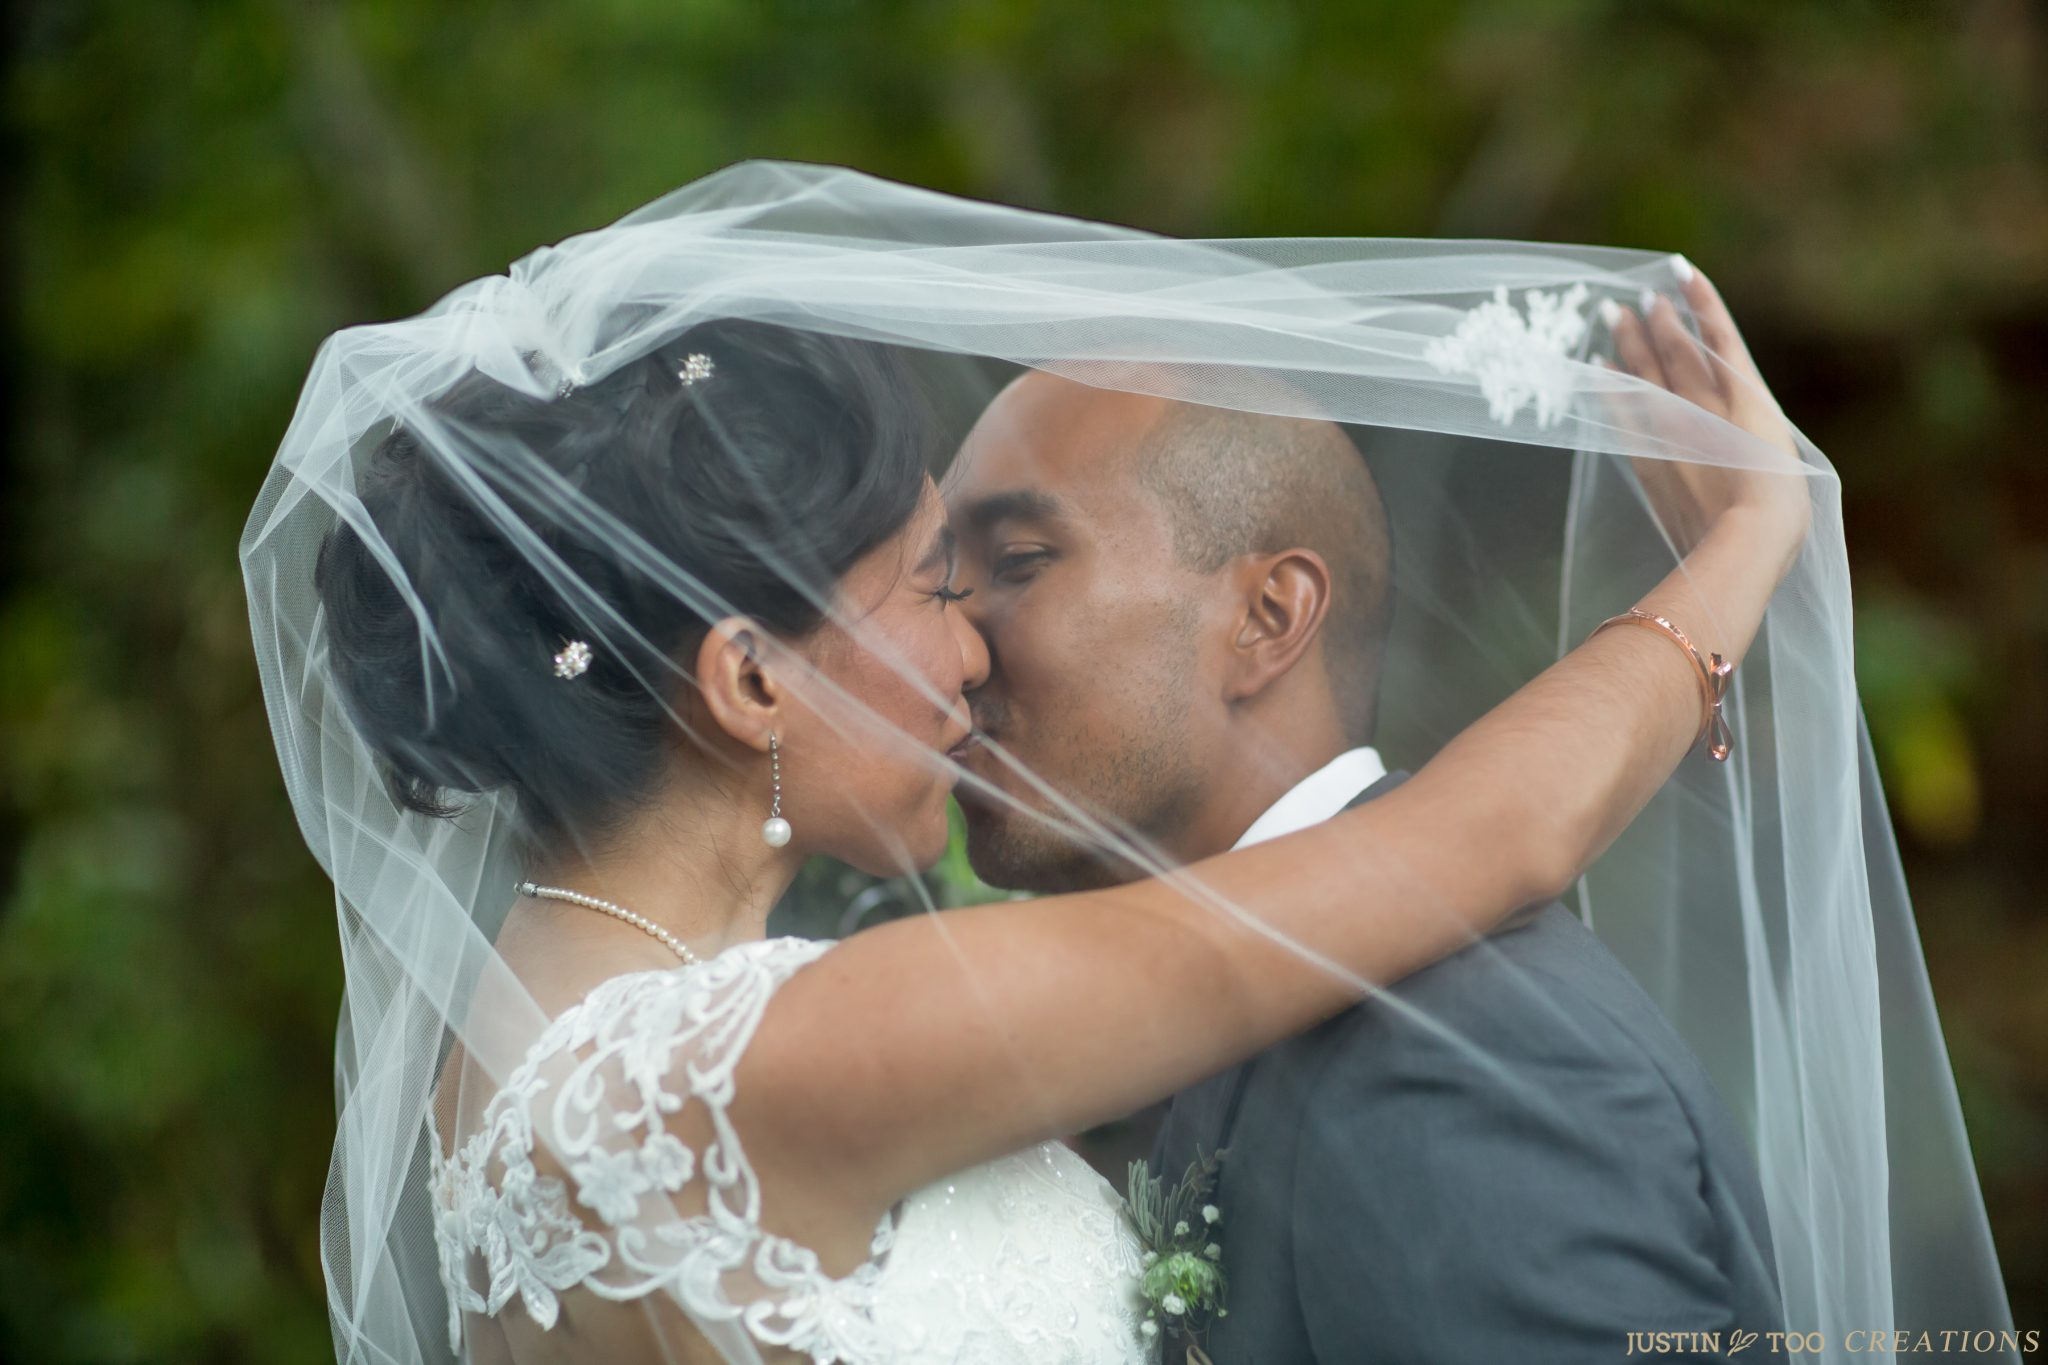 justin too creations, wedding photo, bride and groom kissing